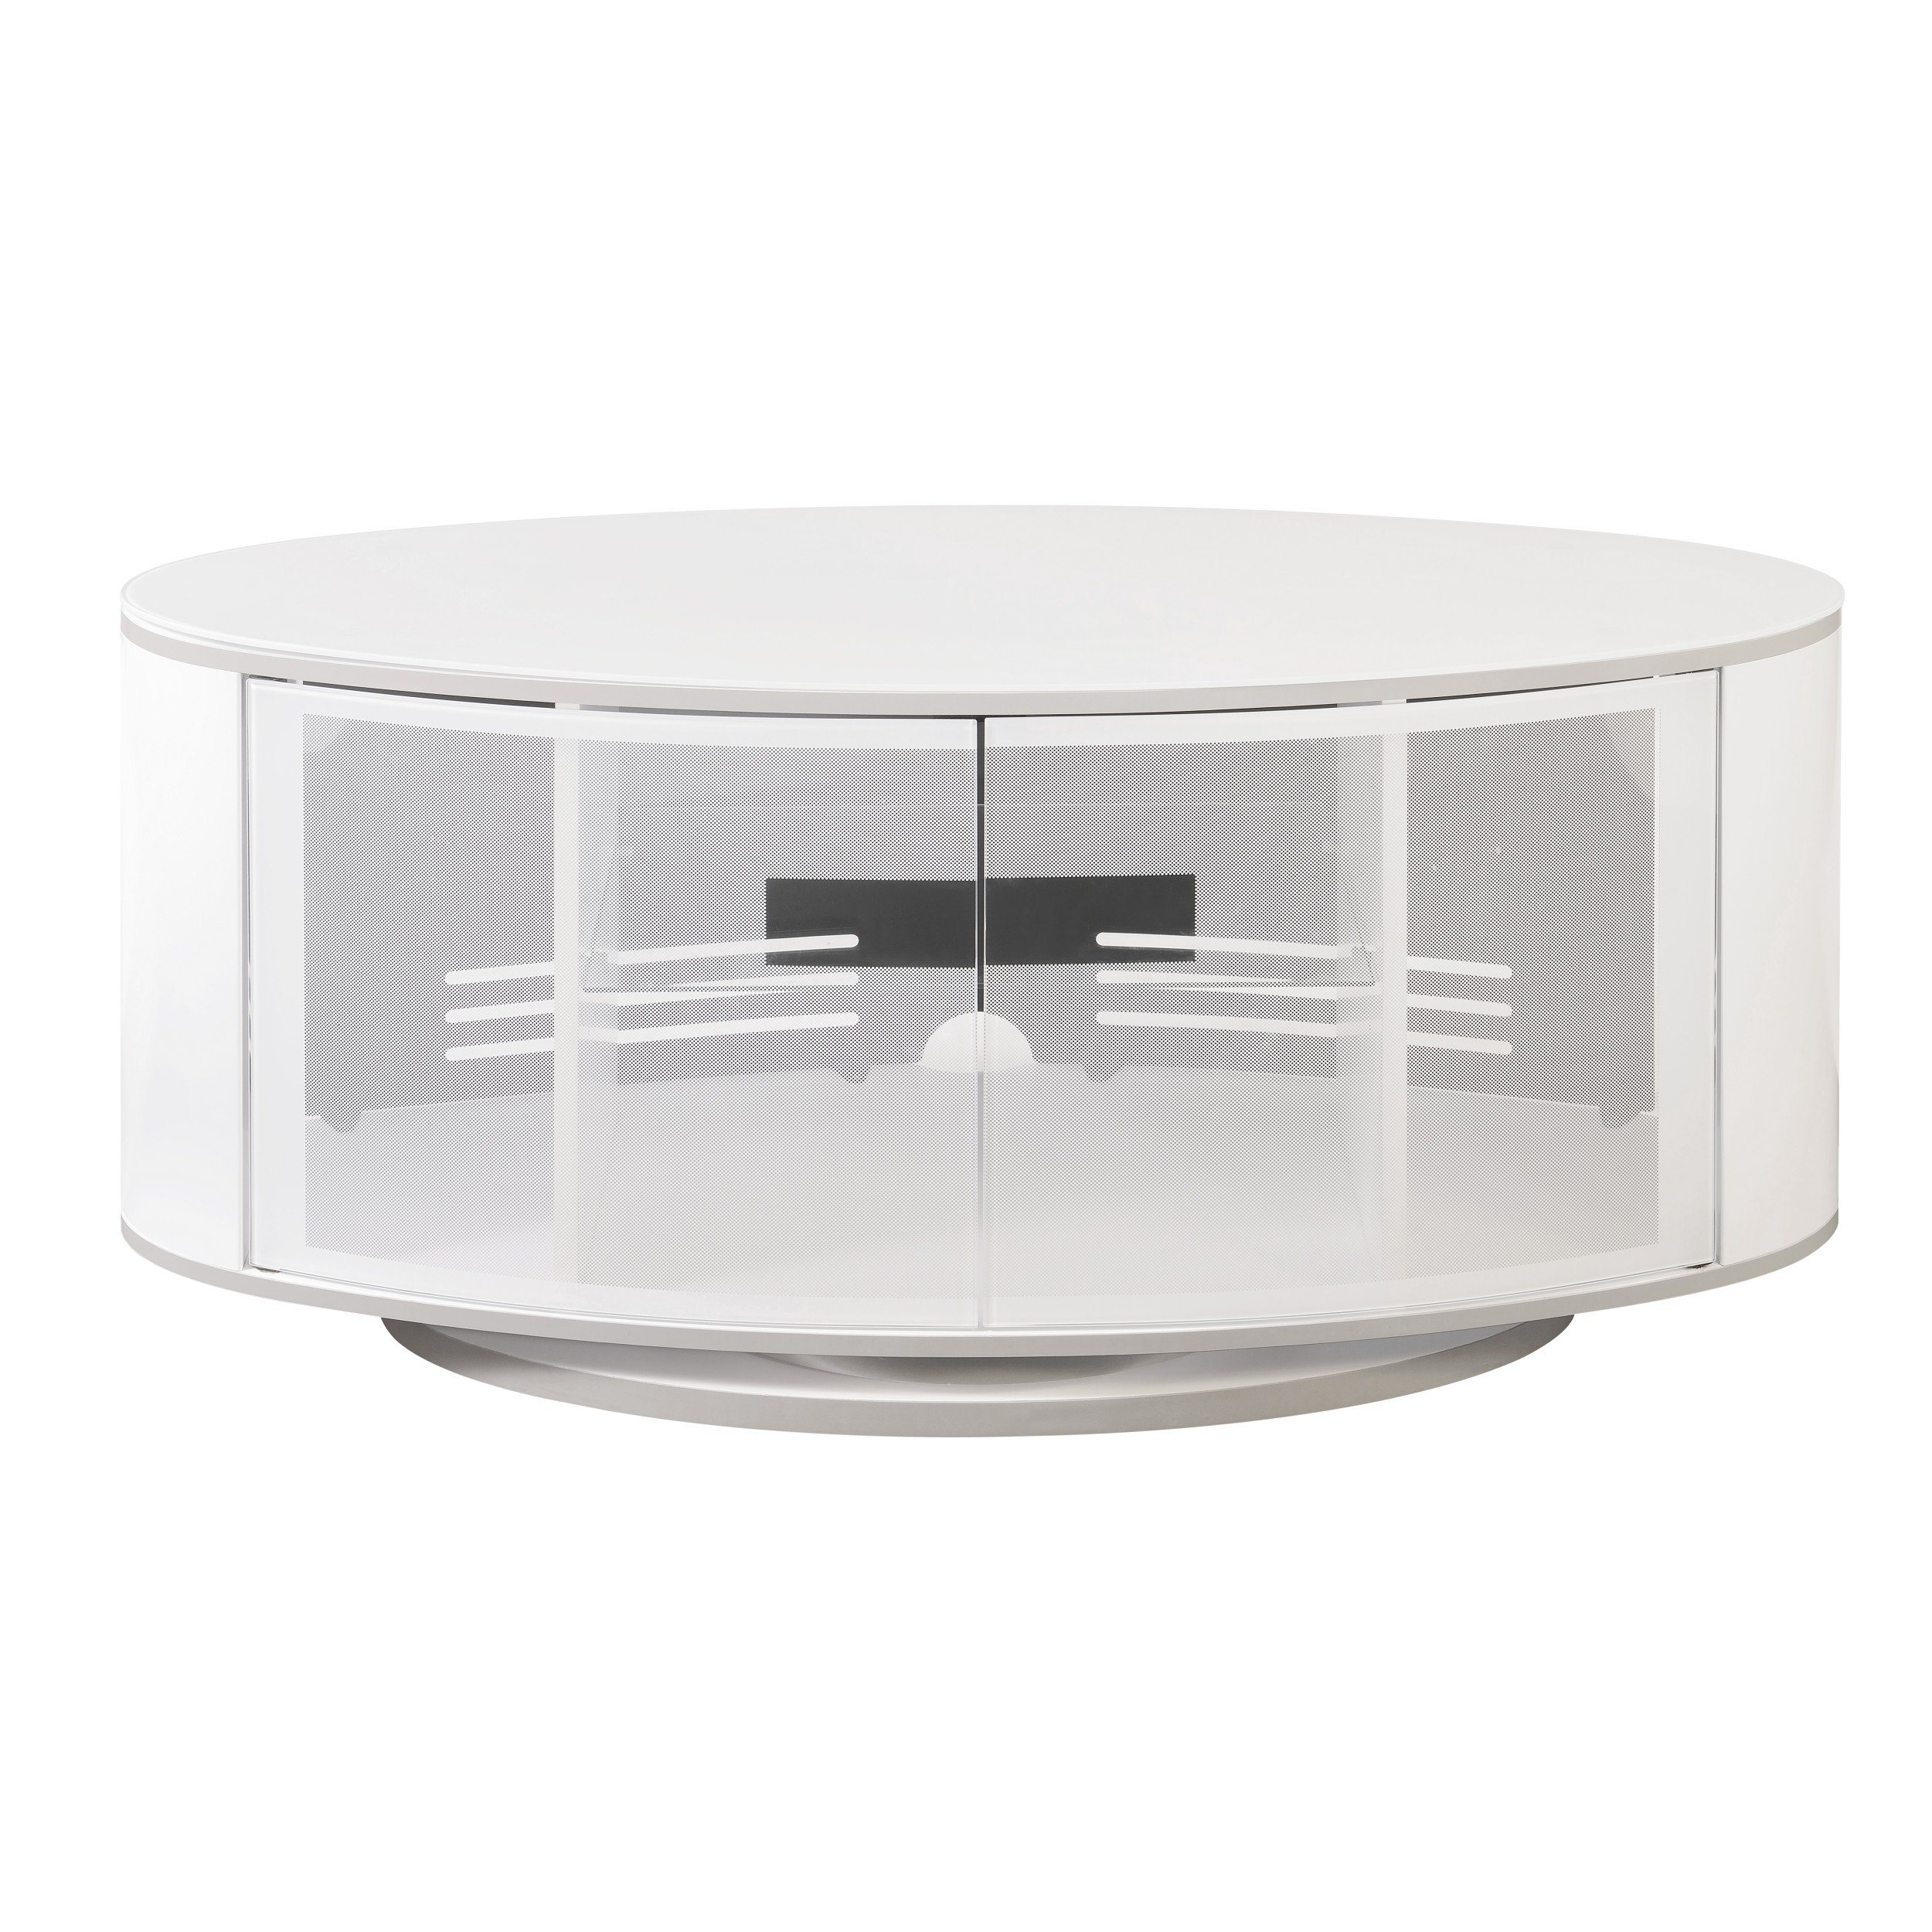 Emerald Home Modern Home High Gloss White TV Console with Glass, Beam Through Doors And Swivel Base